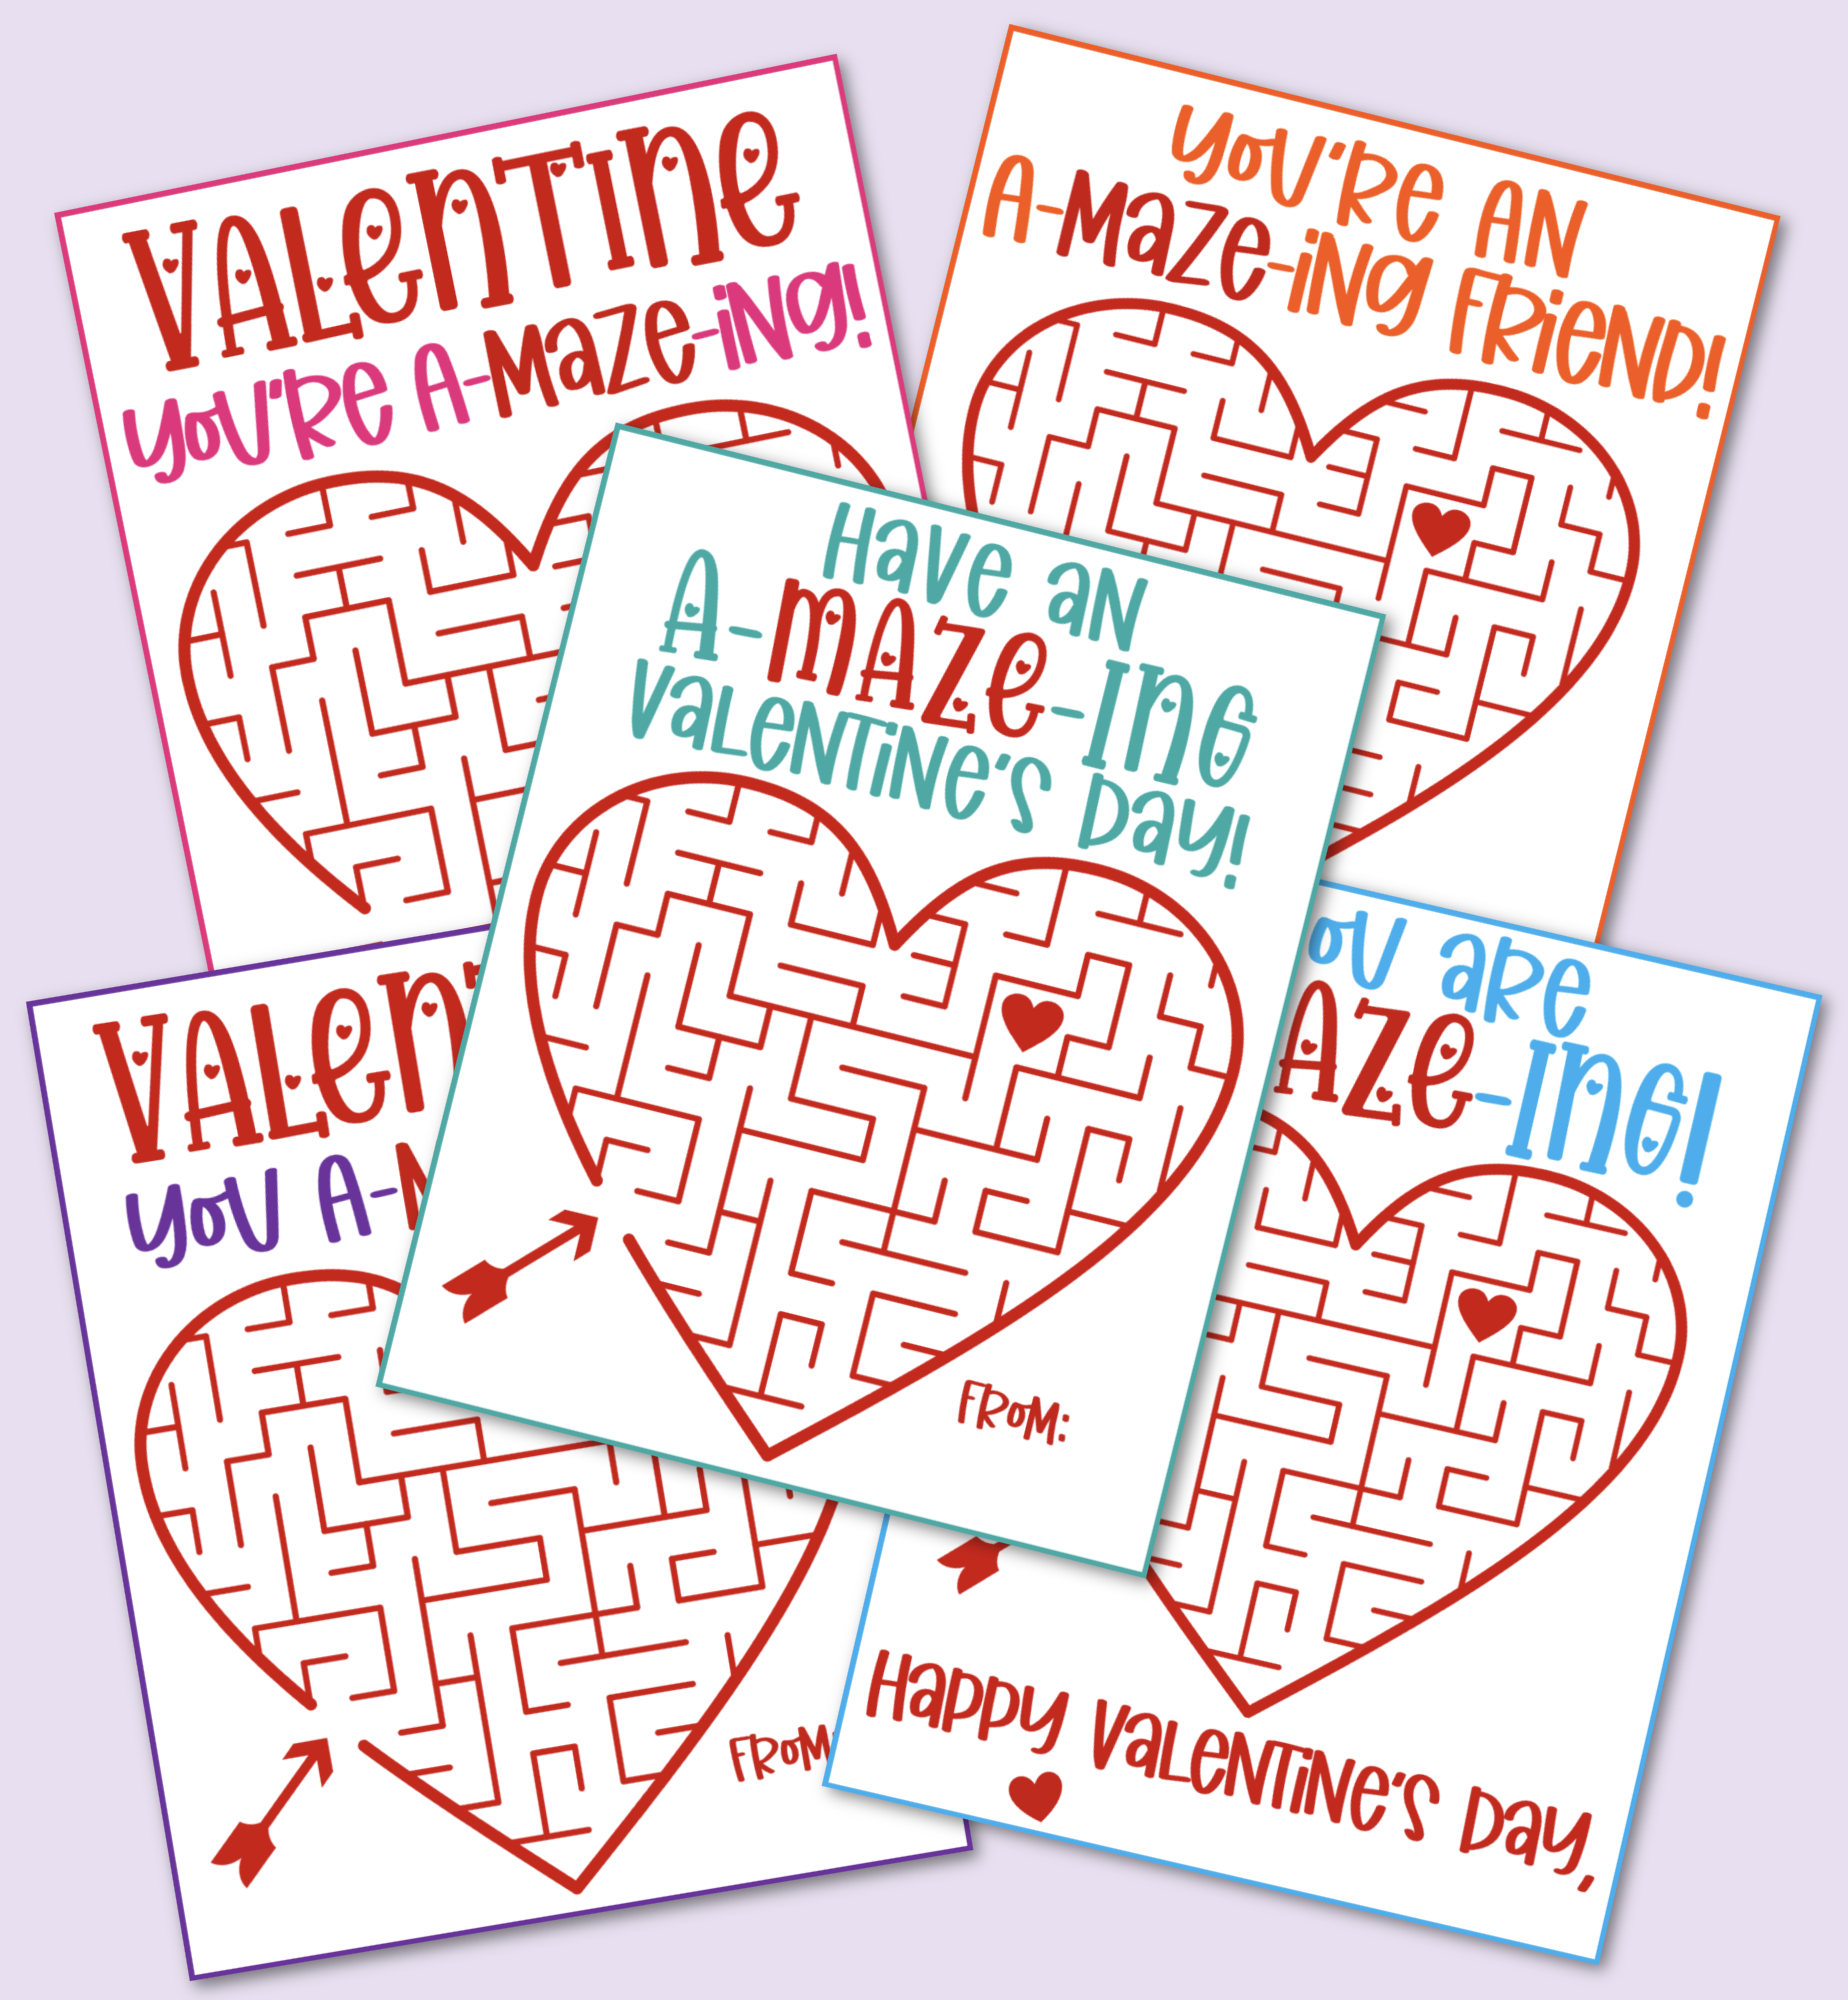 Heart Printable Maze Valentine's Day Cards to download and print for free.